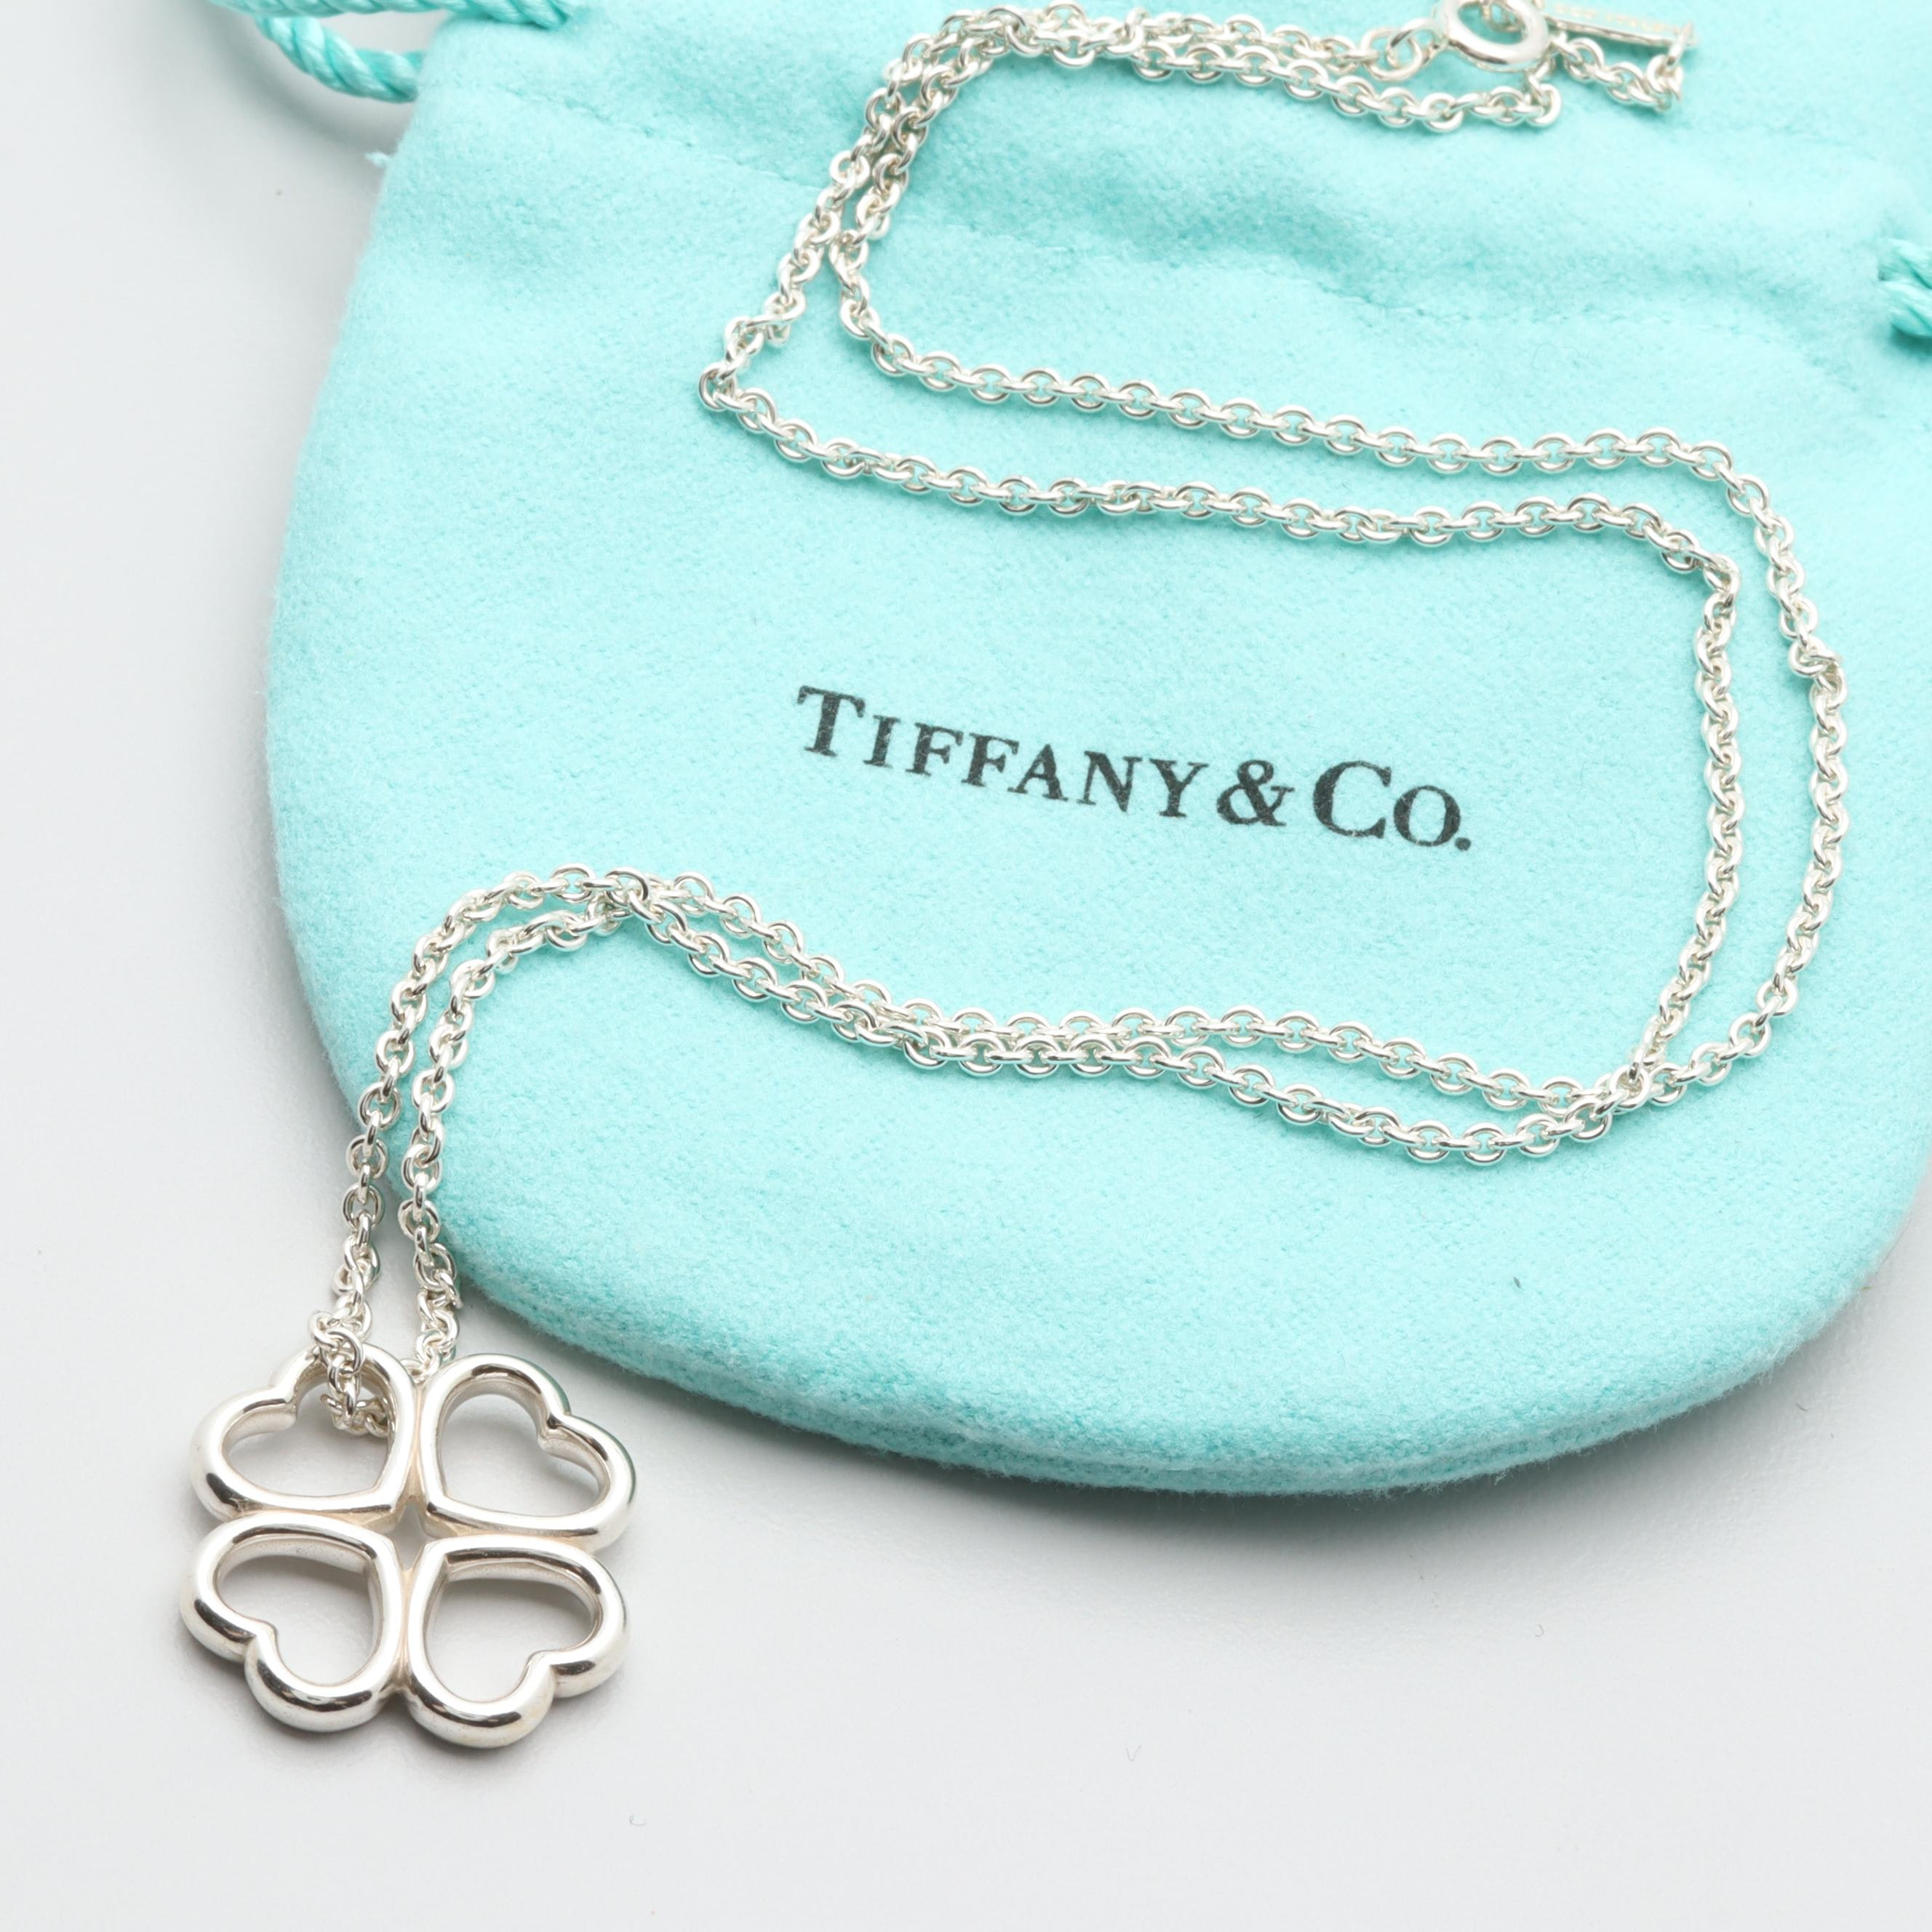 Tiffany & Co. Sterling Silver Four Leaf Clover Necklace